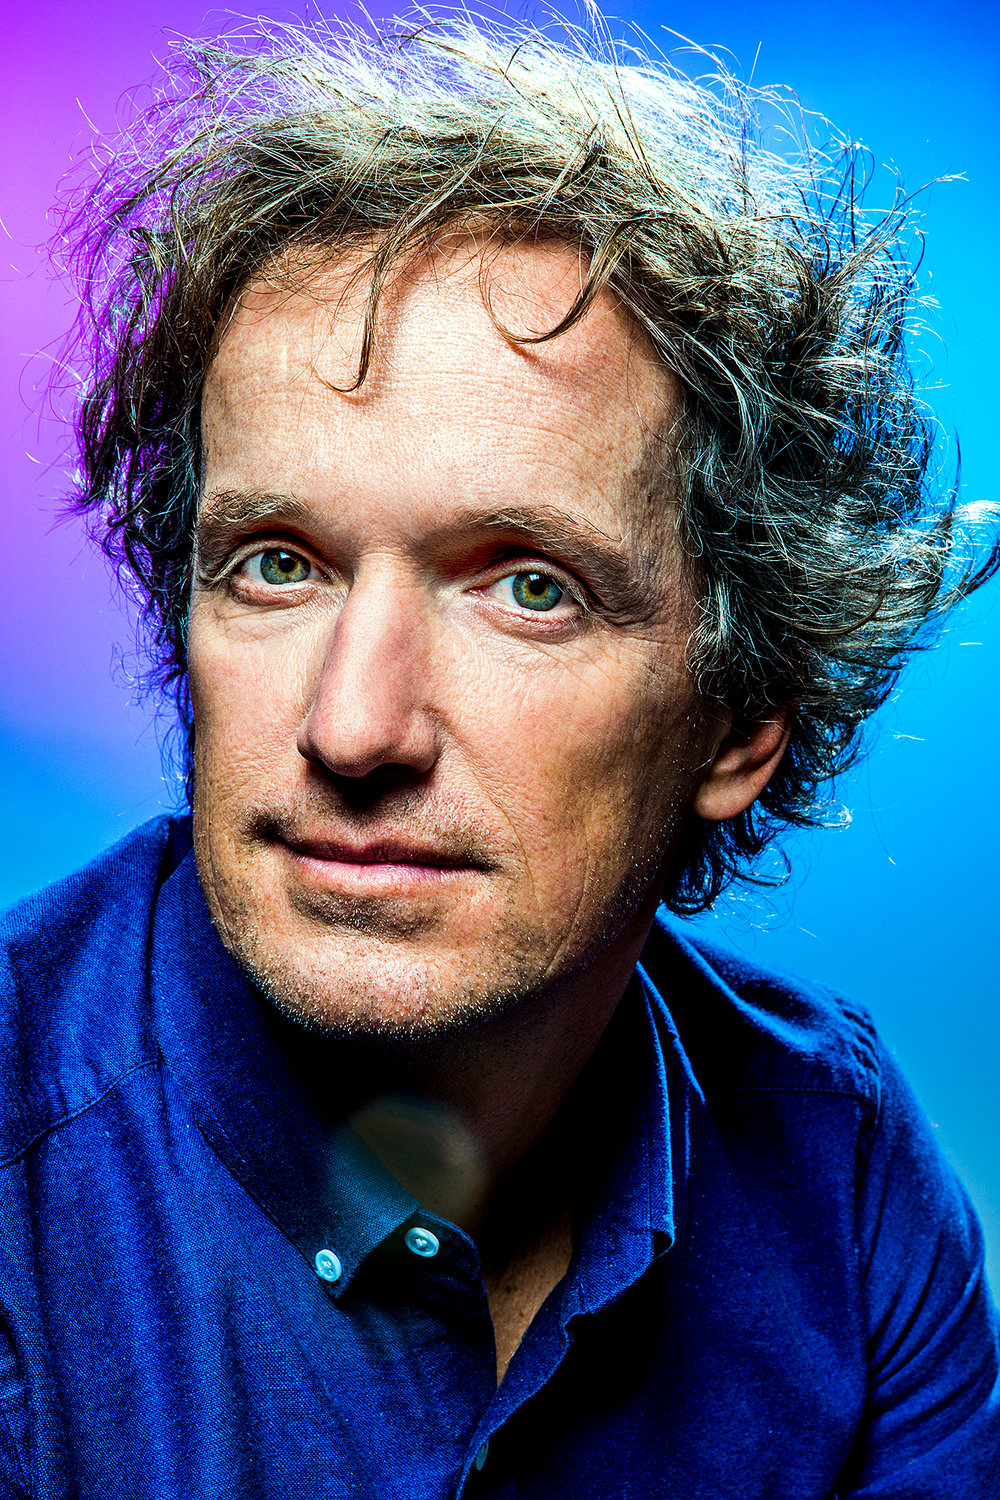 Yves Behar for Newsweek